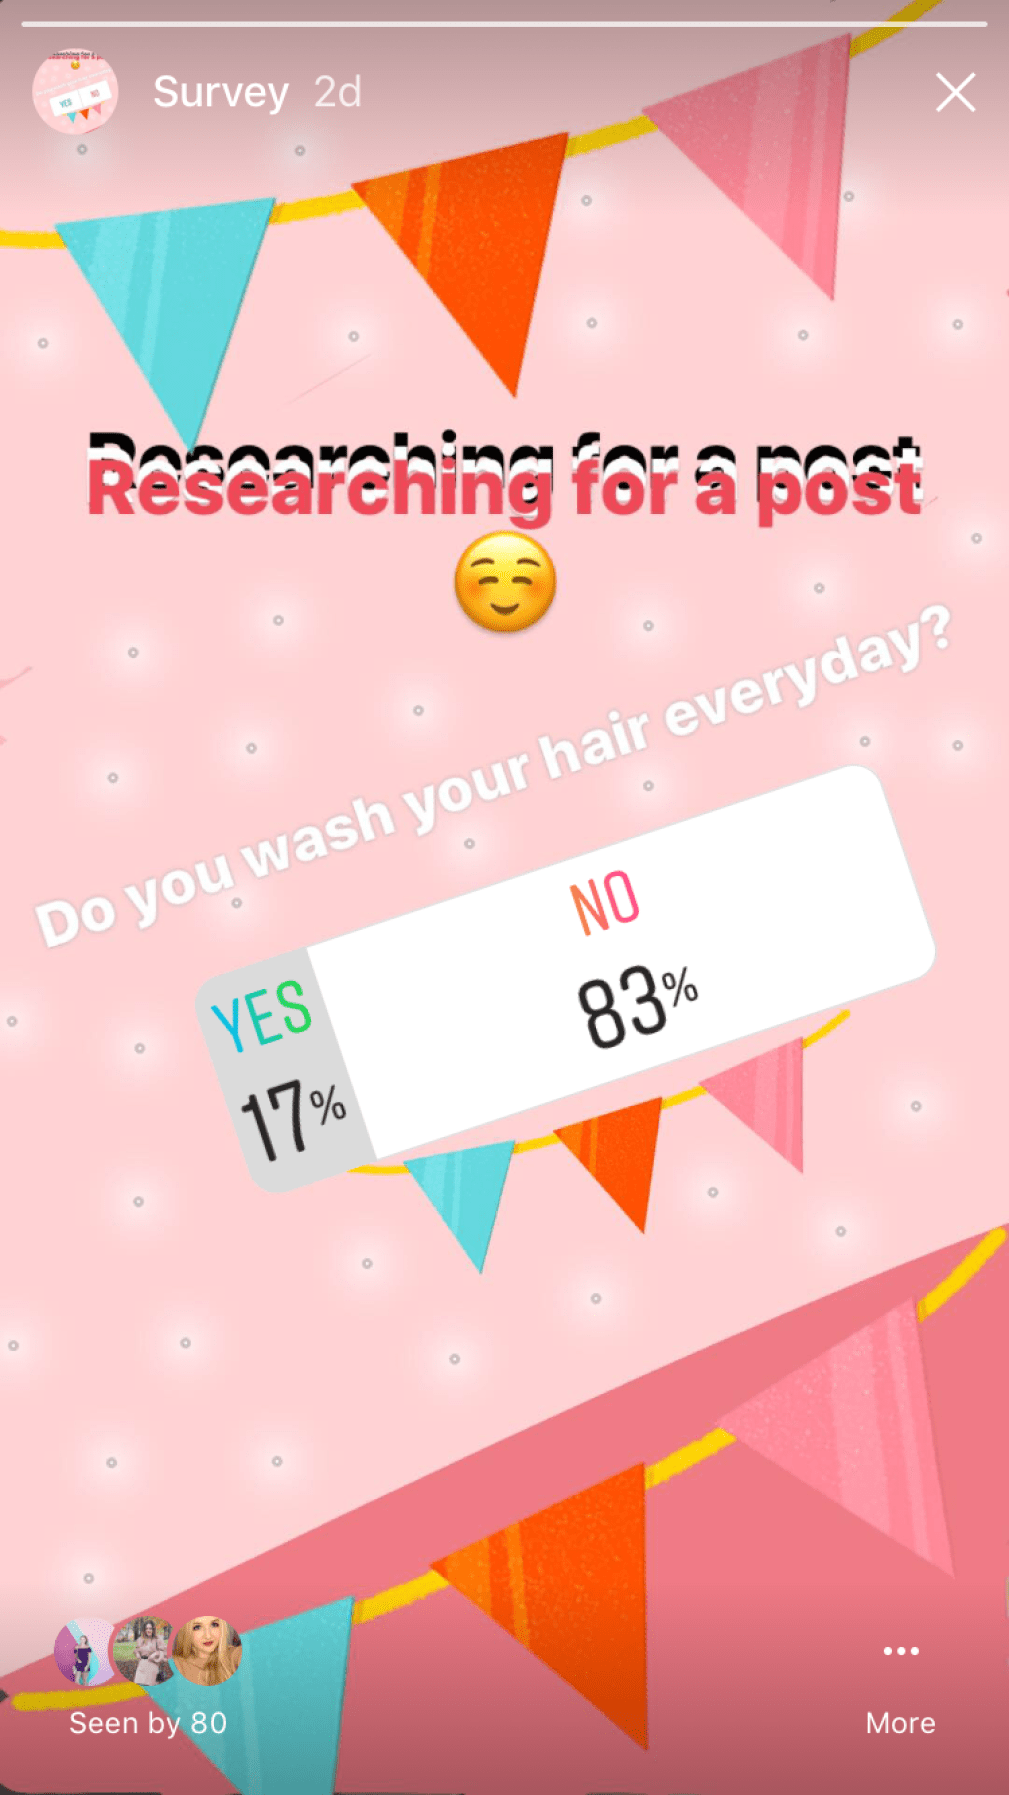 instagram survey. How often should we wash our hair?